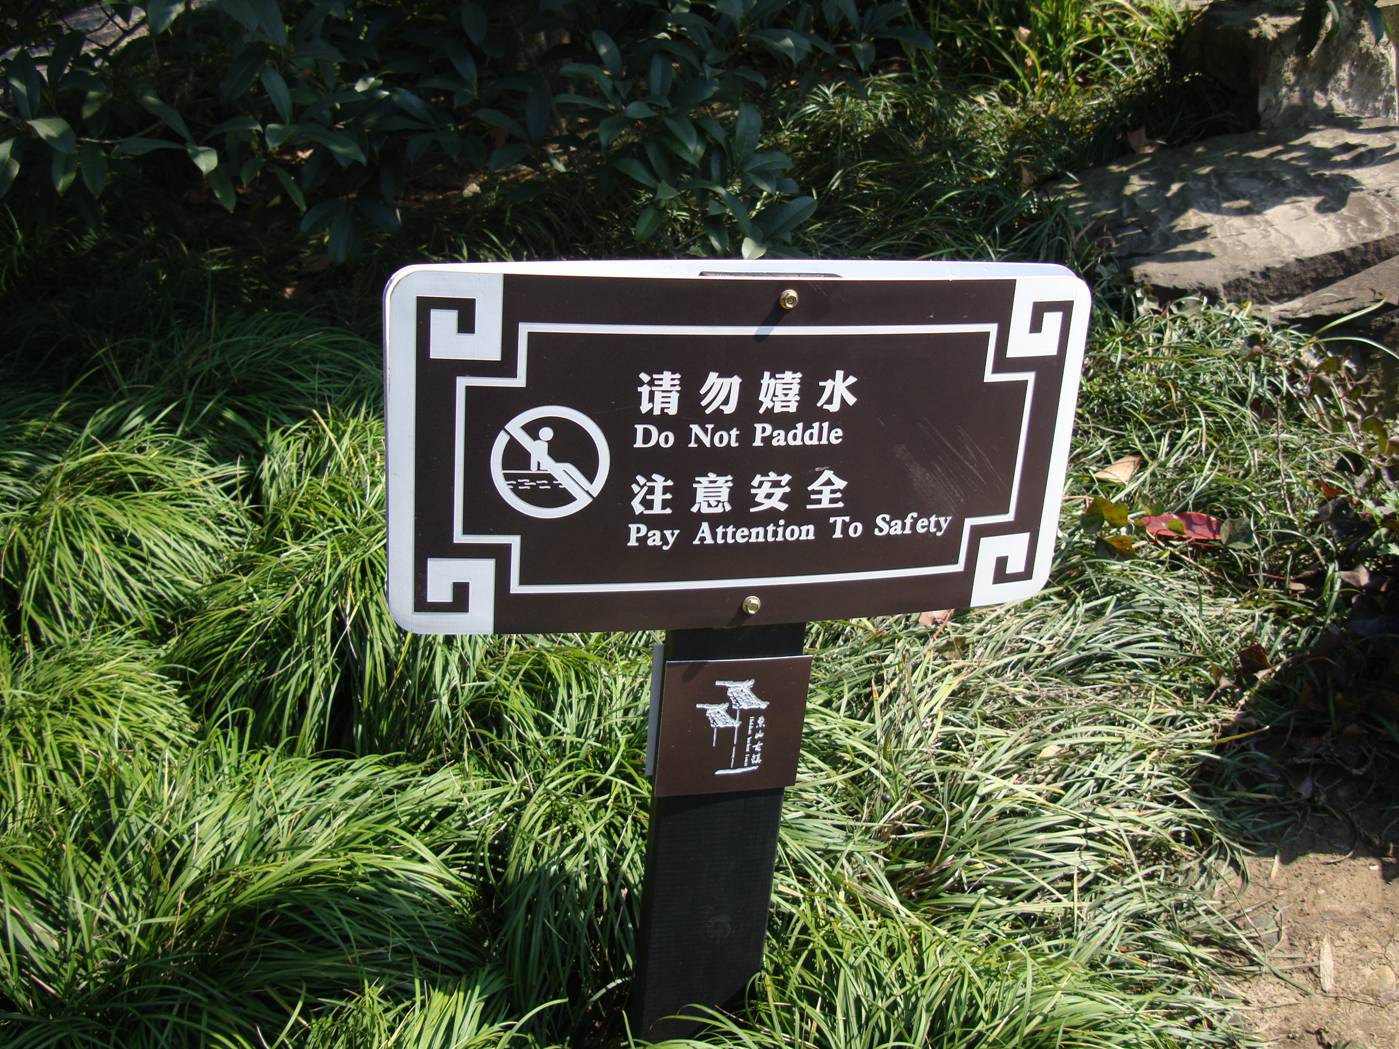 Chinglish, but perfectly understandable.  Assuming people might be tempted to paddle here.  Wuxi, China